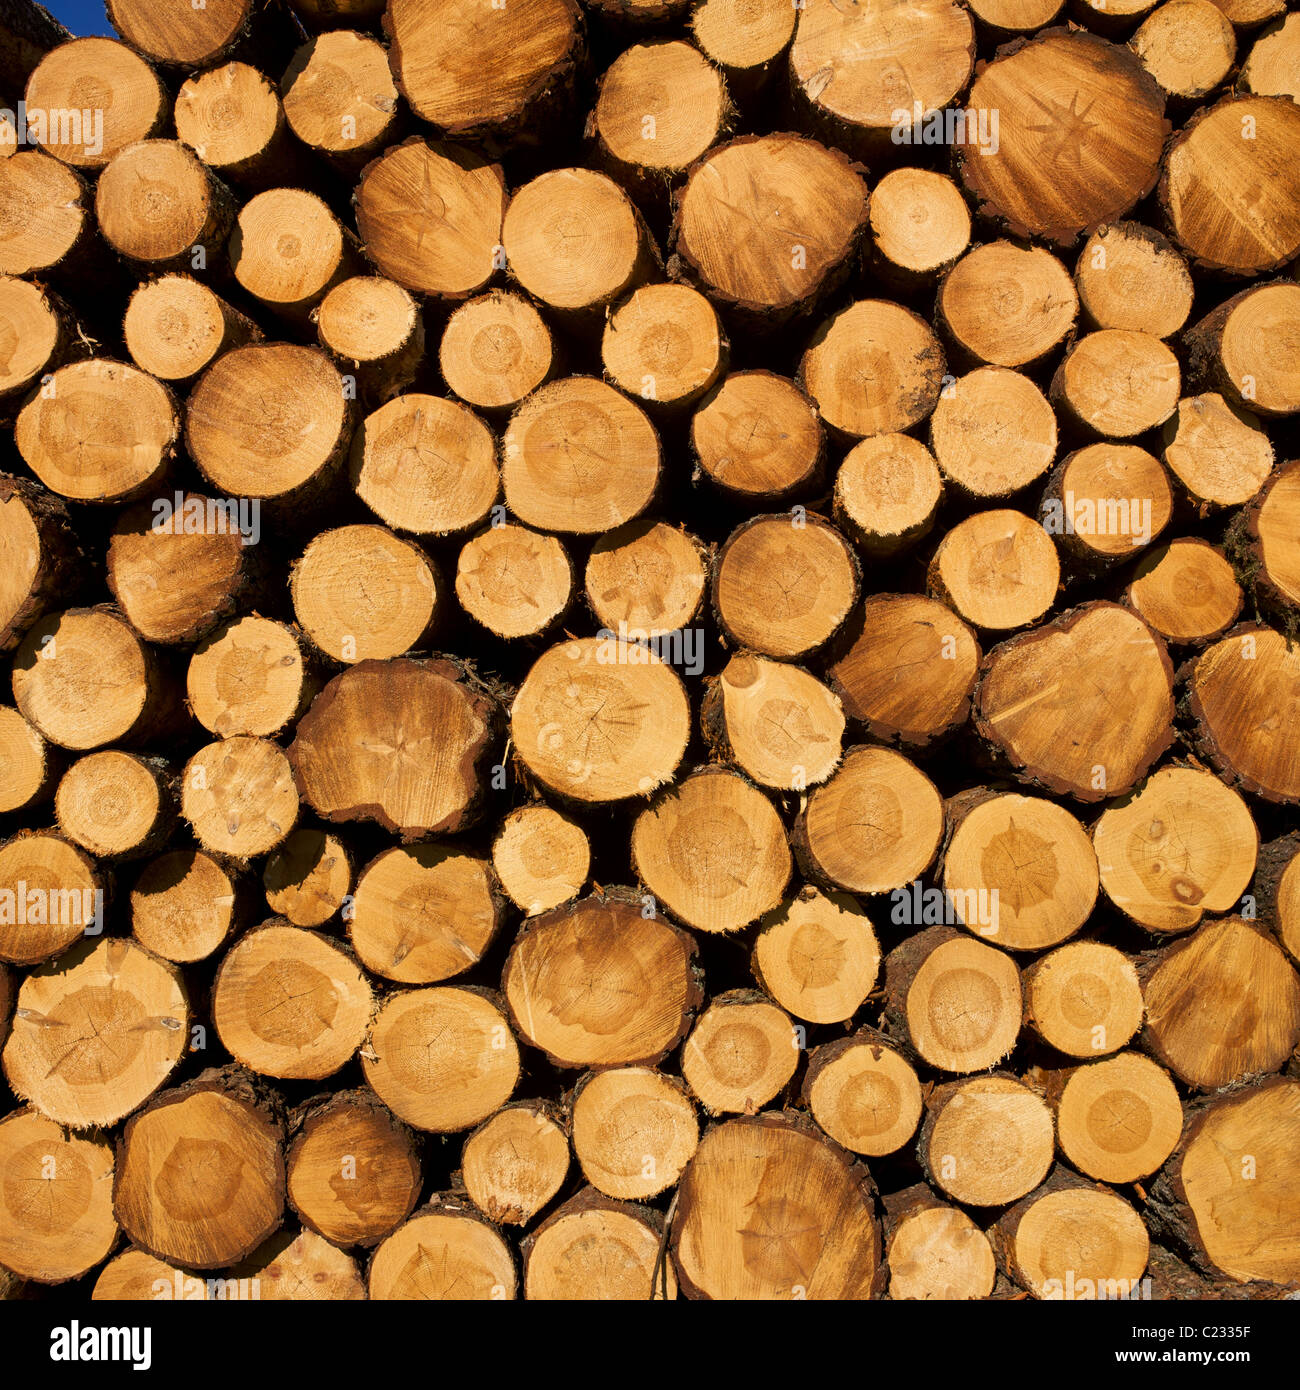 Stack of wood logs. - Stock Image